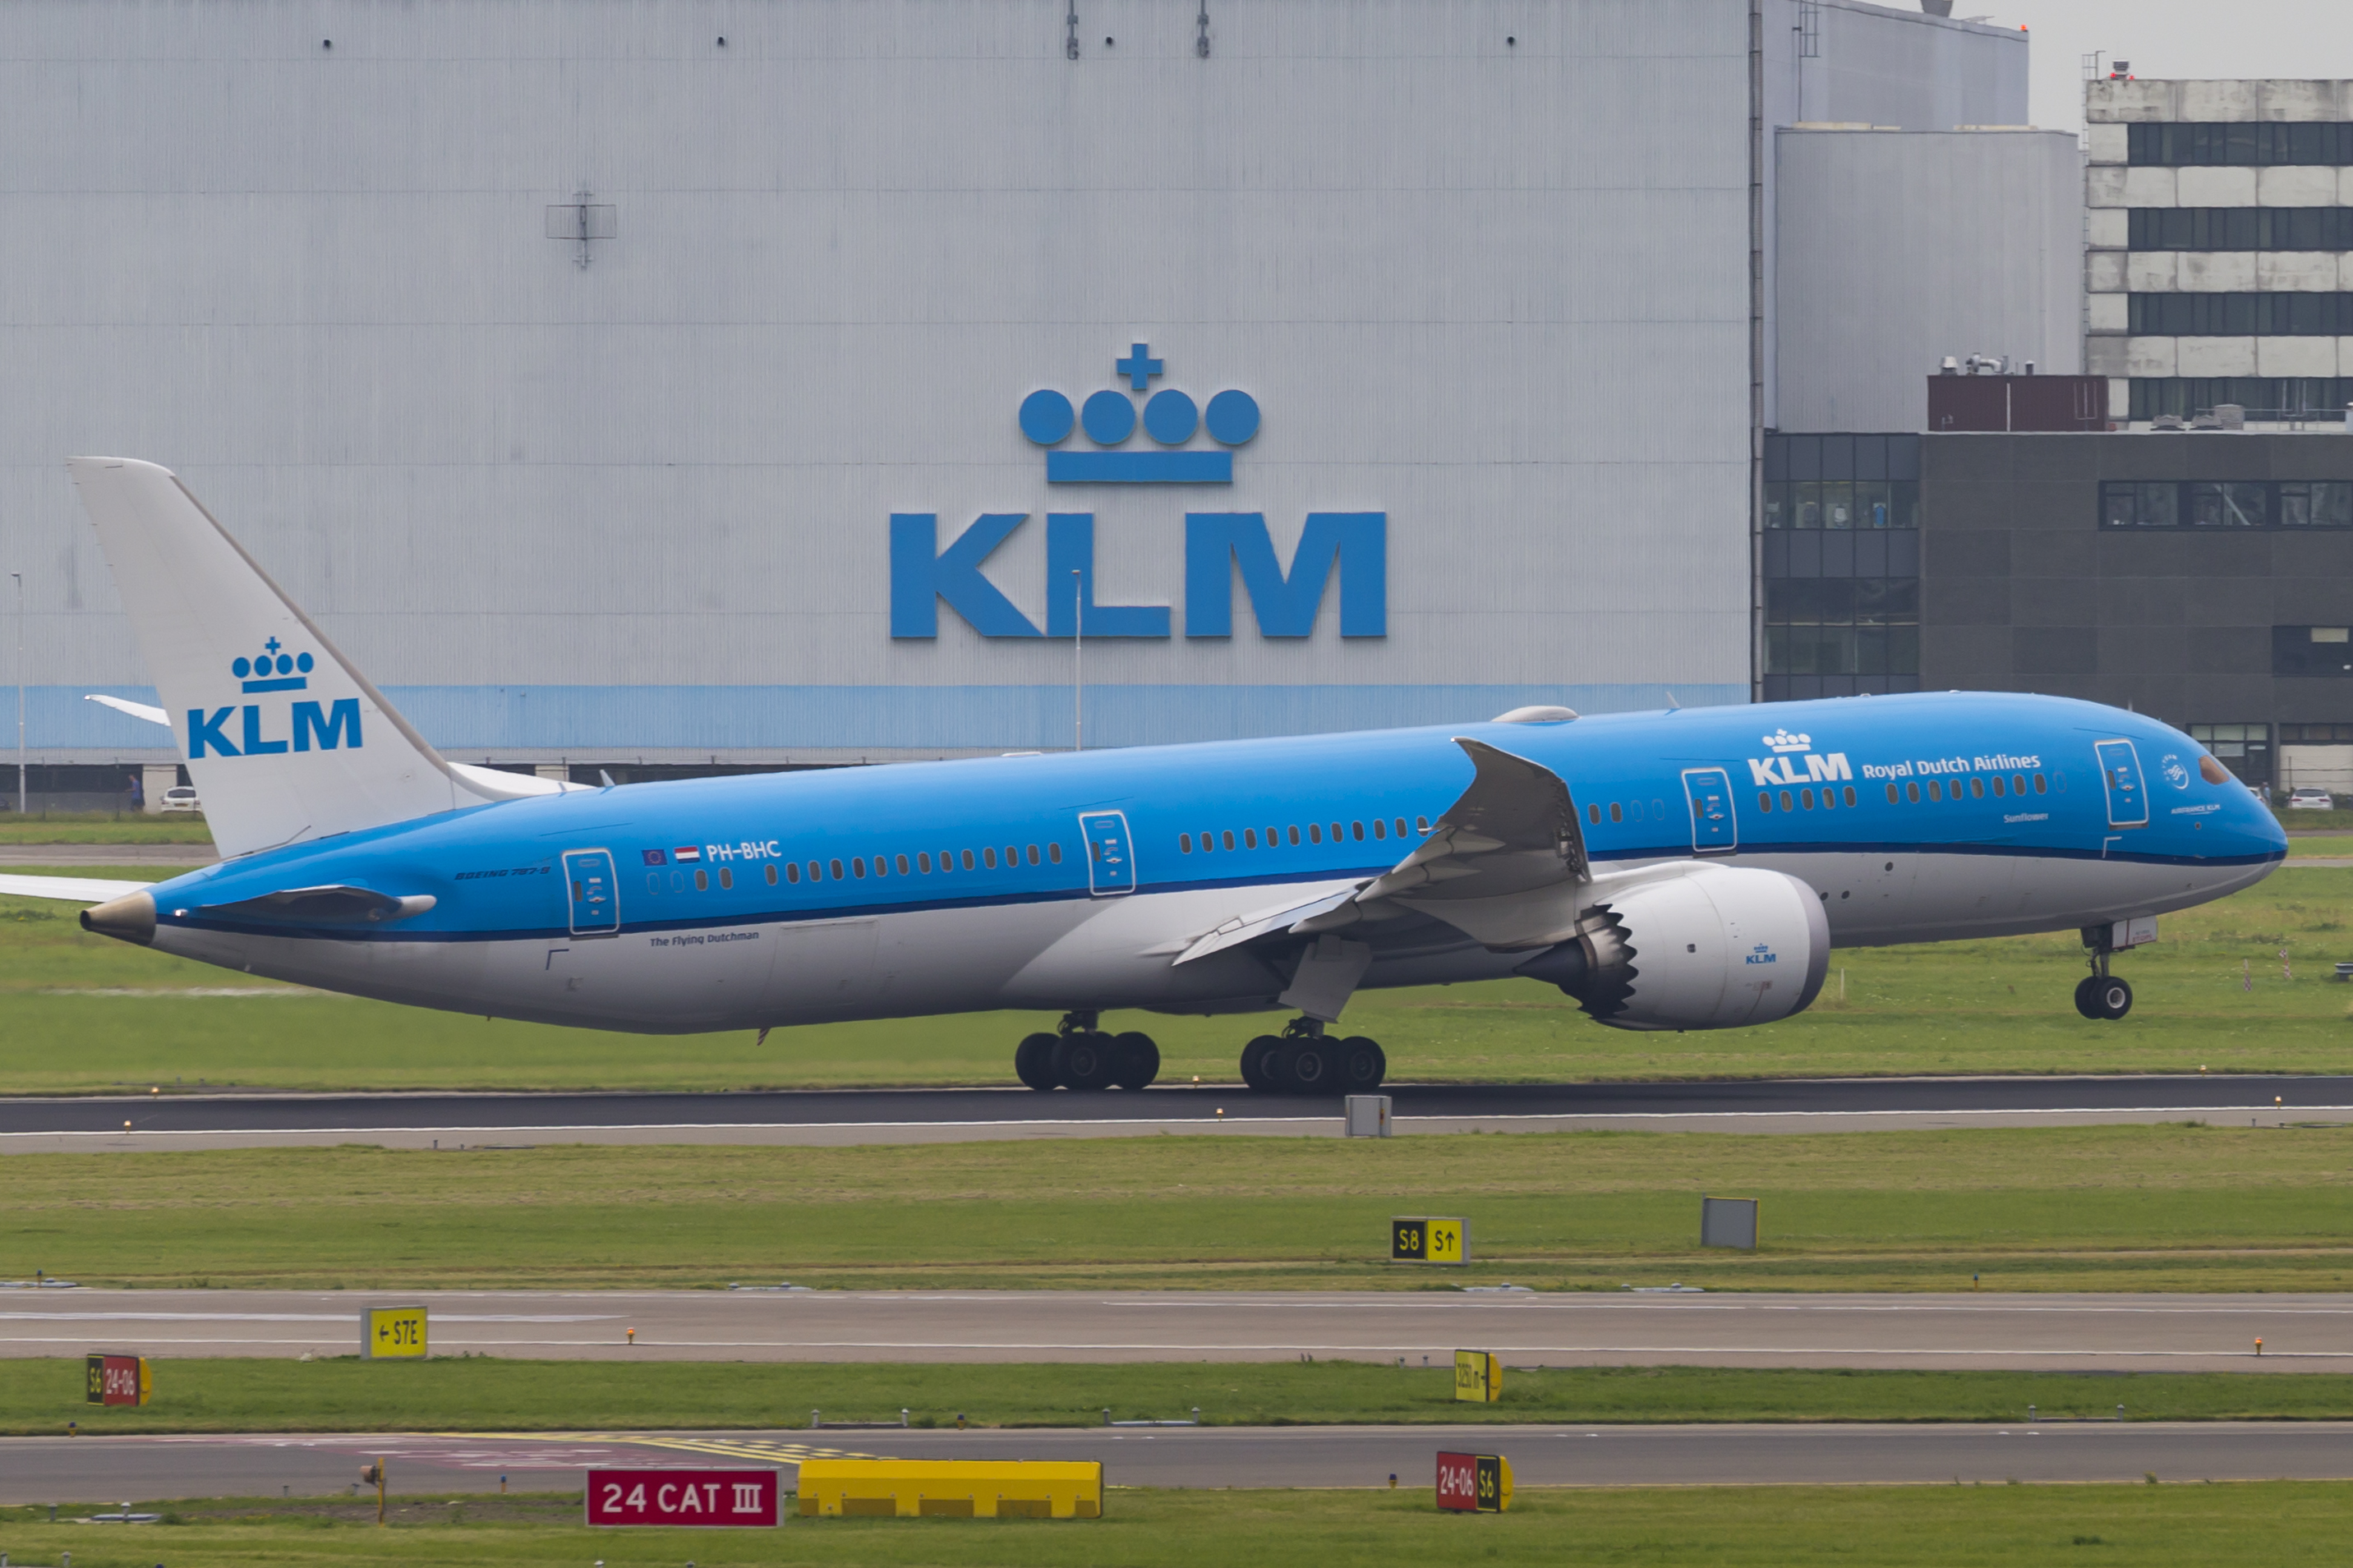 En Boeing 787-9 Dreamliner fra KLM. Foto: © Thorbjørn Brunander Sund, Danish Aviation Photo